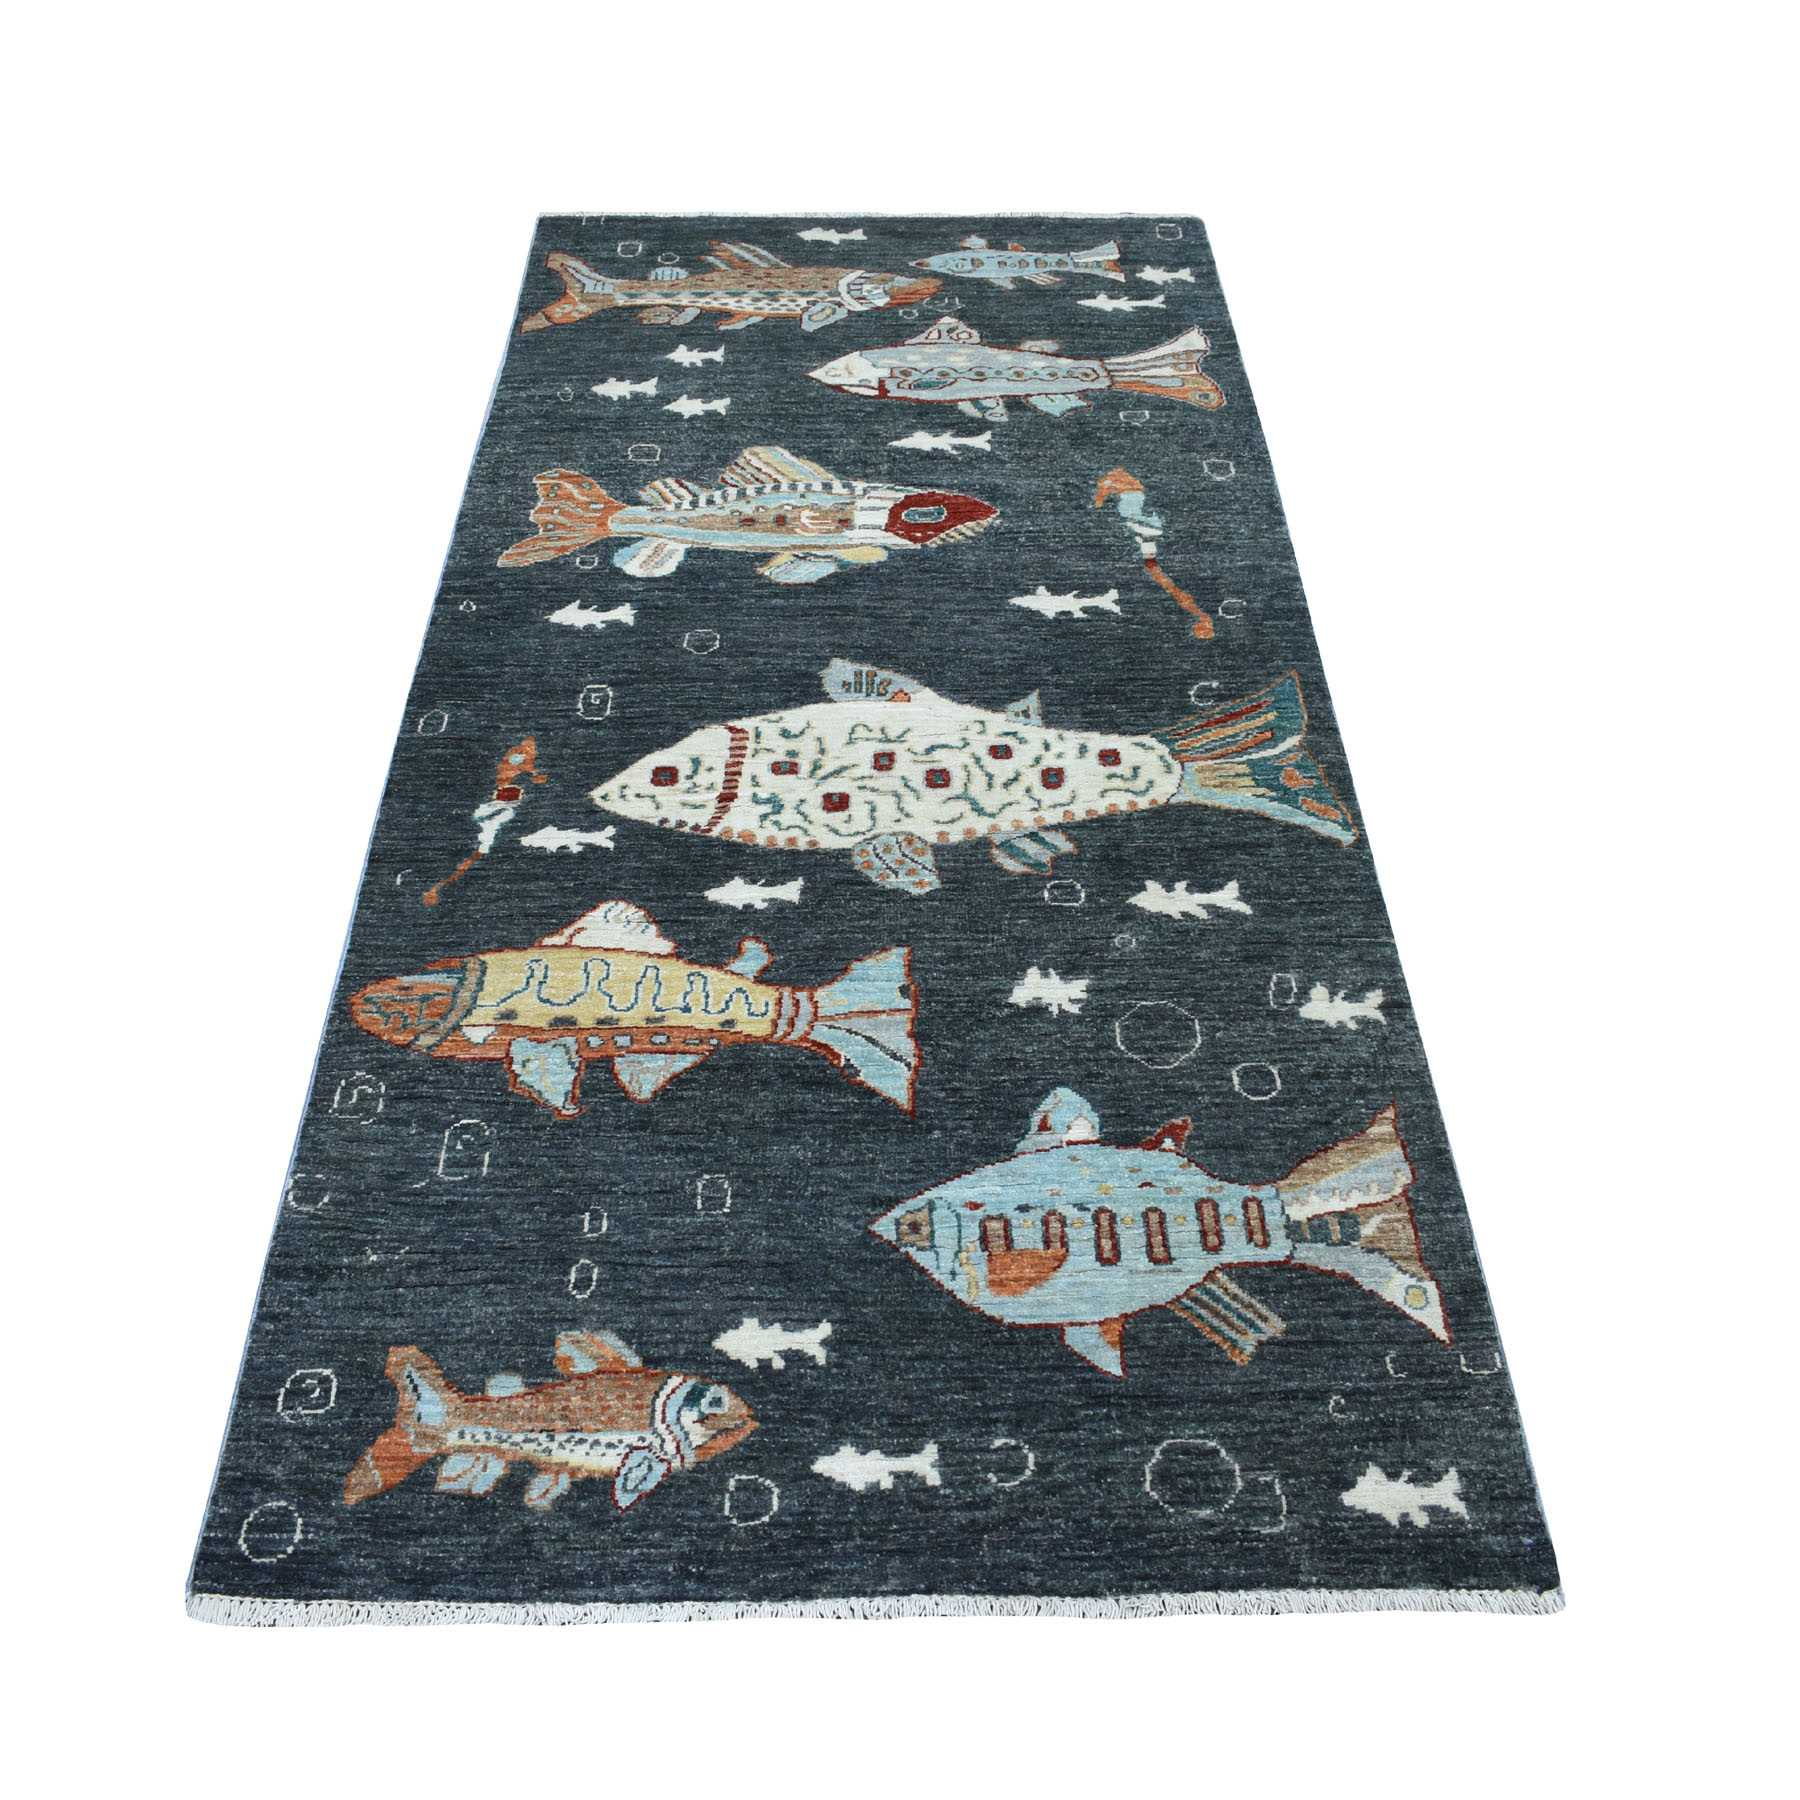 "3'7""x7'1"" Charcoal Black Oceanic Fish Design Peshawar Natural Wool Wide Runner Hand Woven Oriental Rug"